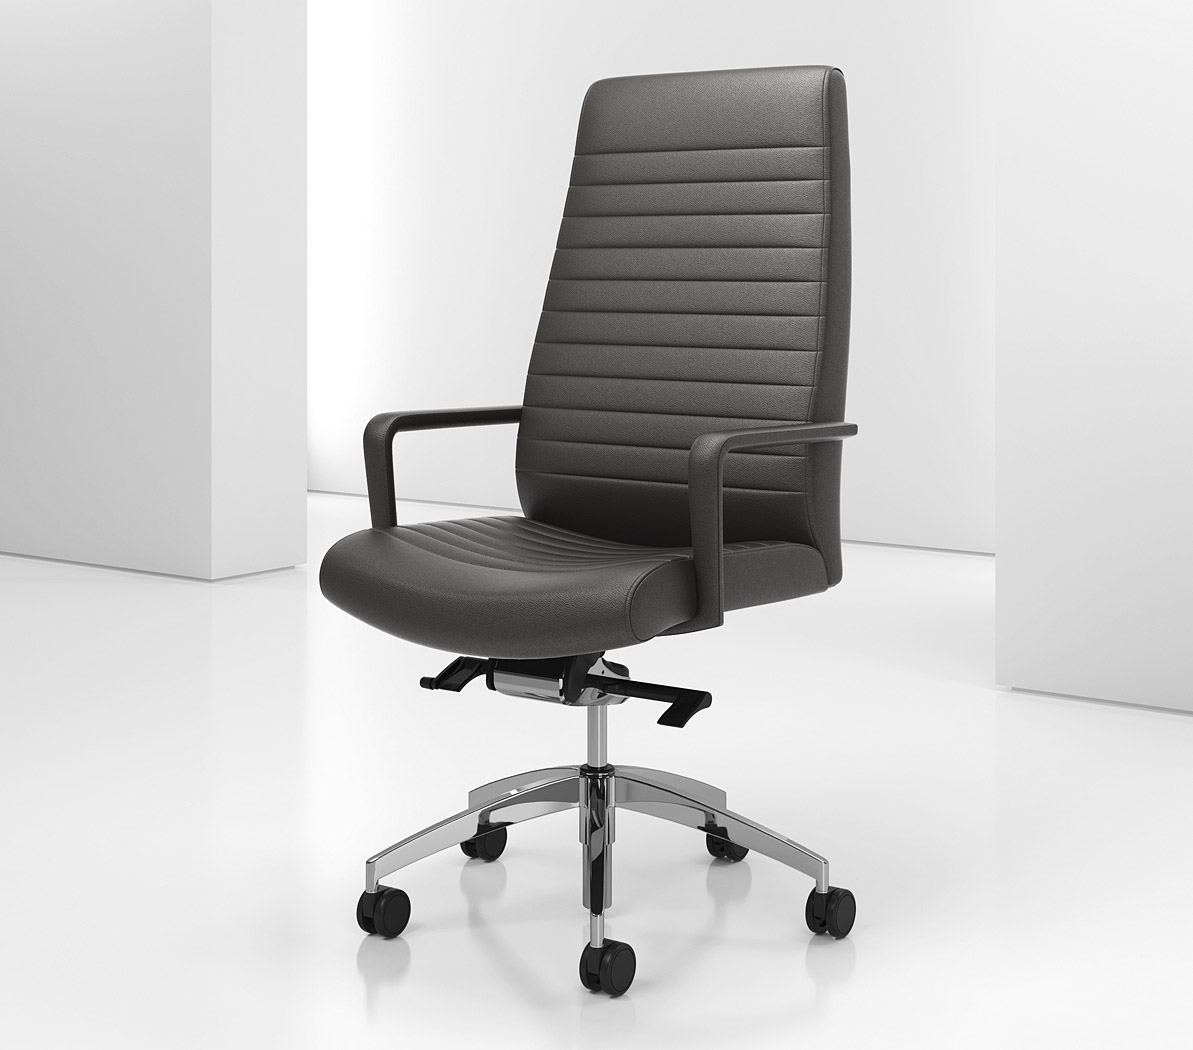 office chair kelowna pc gaming chairs projects  archimed studio